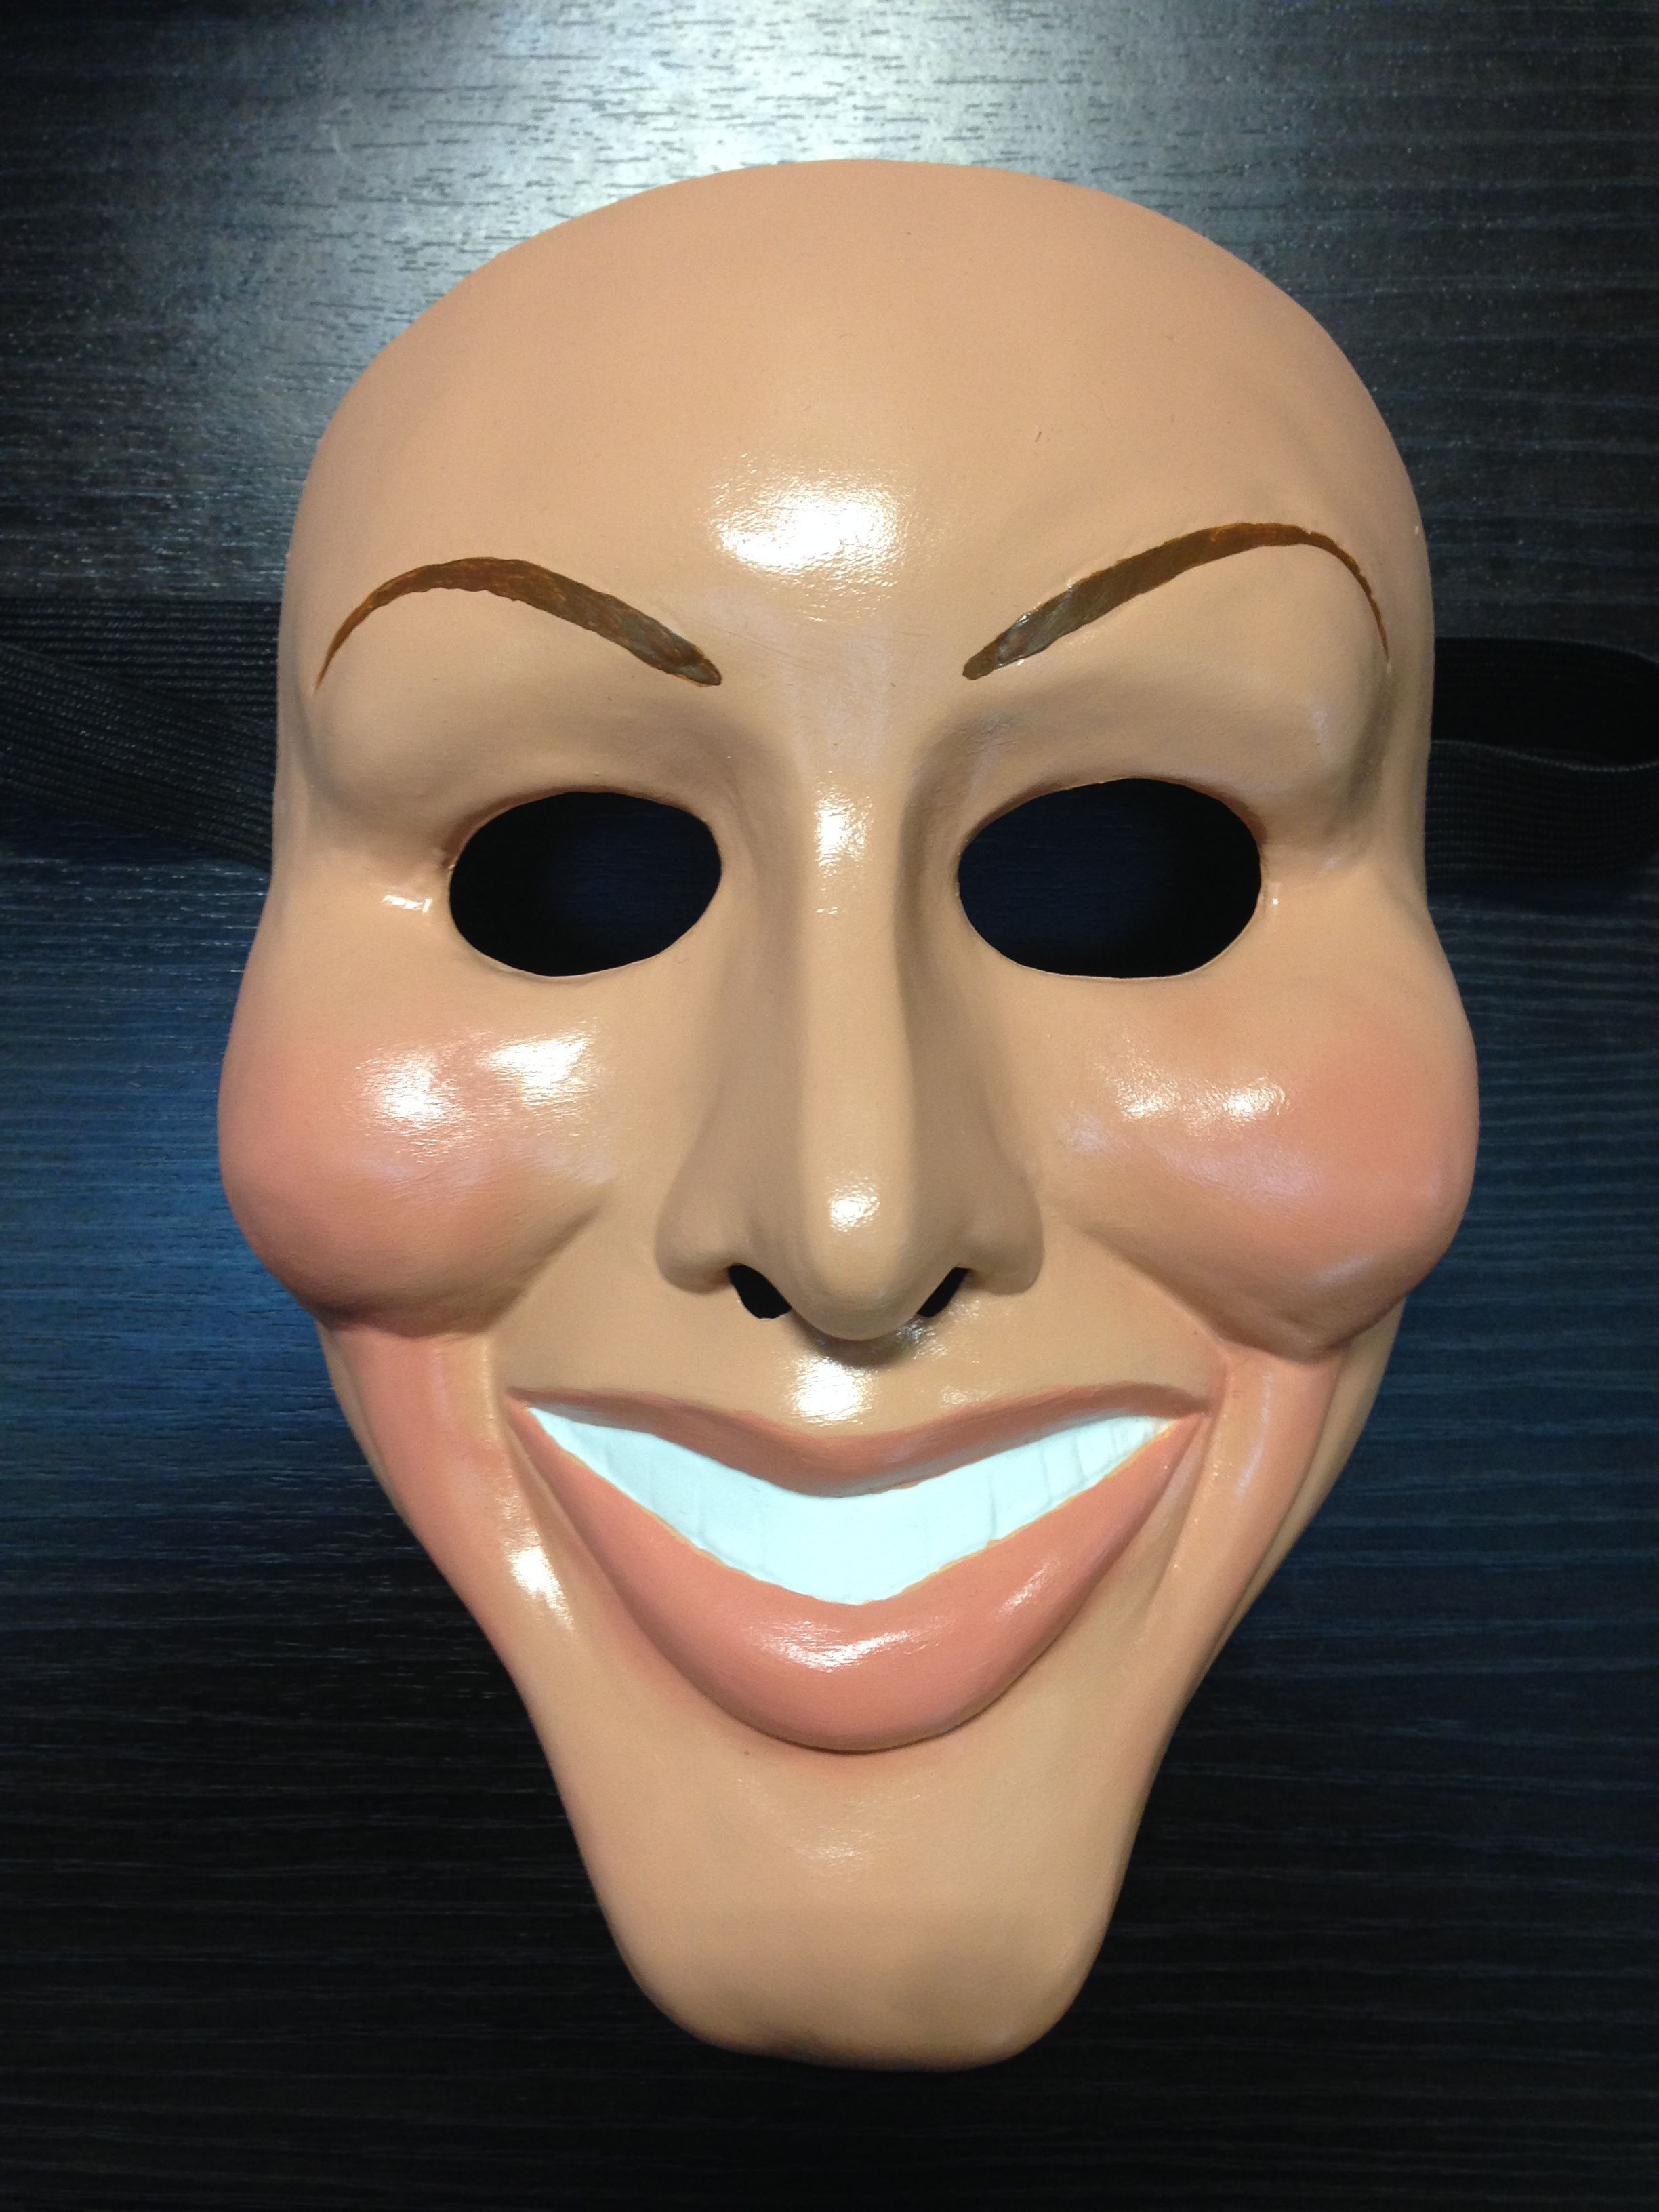 i'm going for a purge type mask. this photo gives me an idea of what